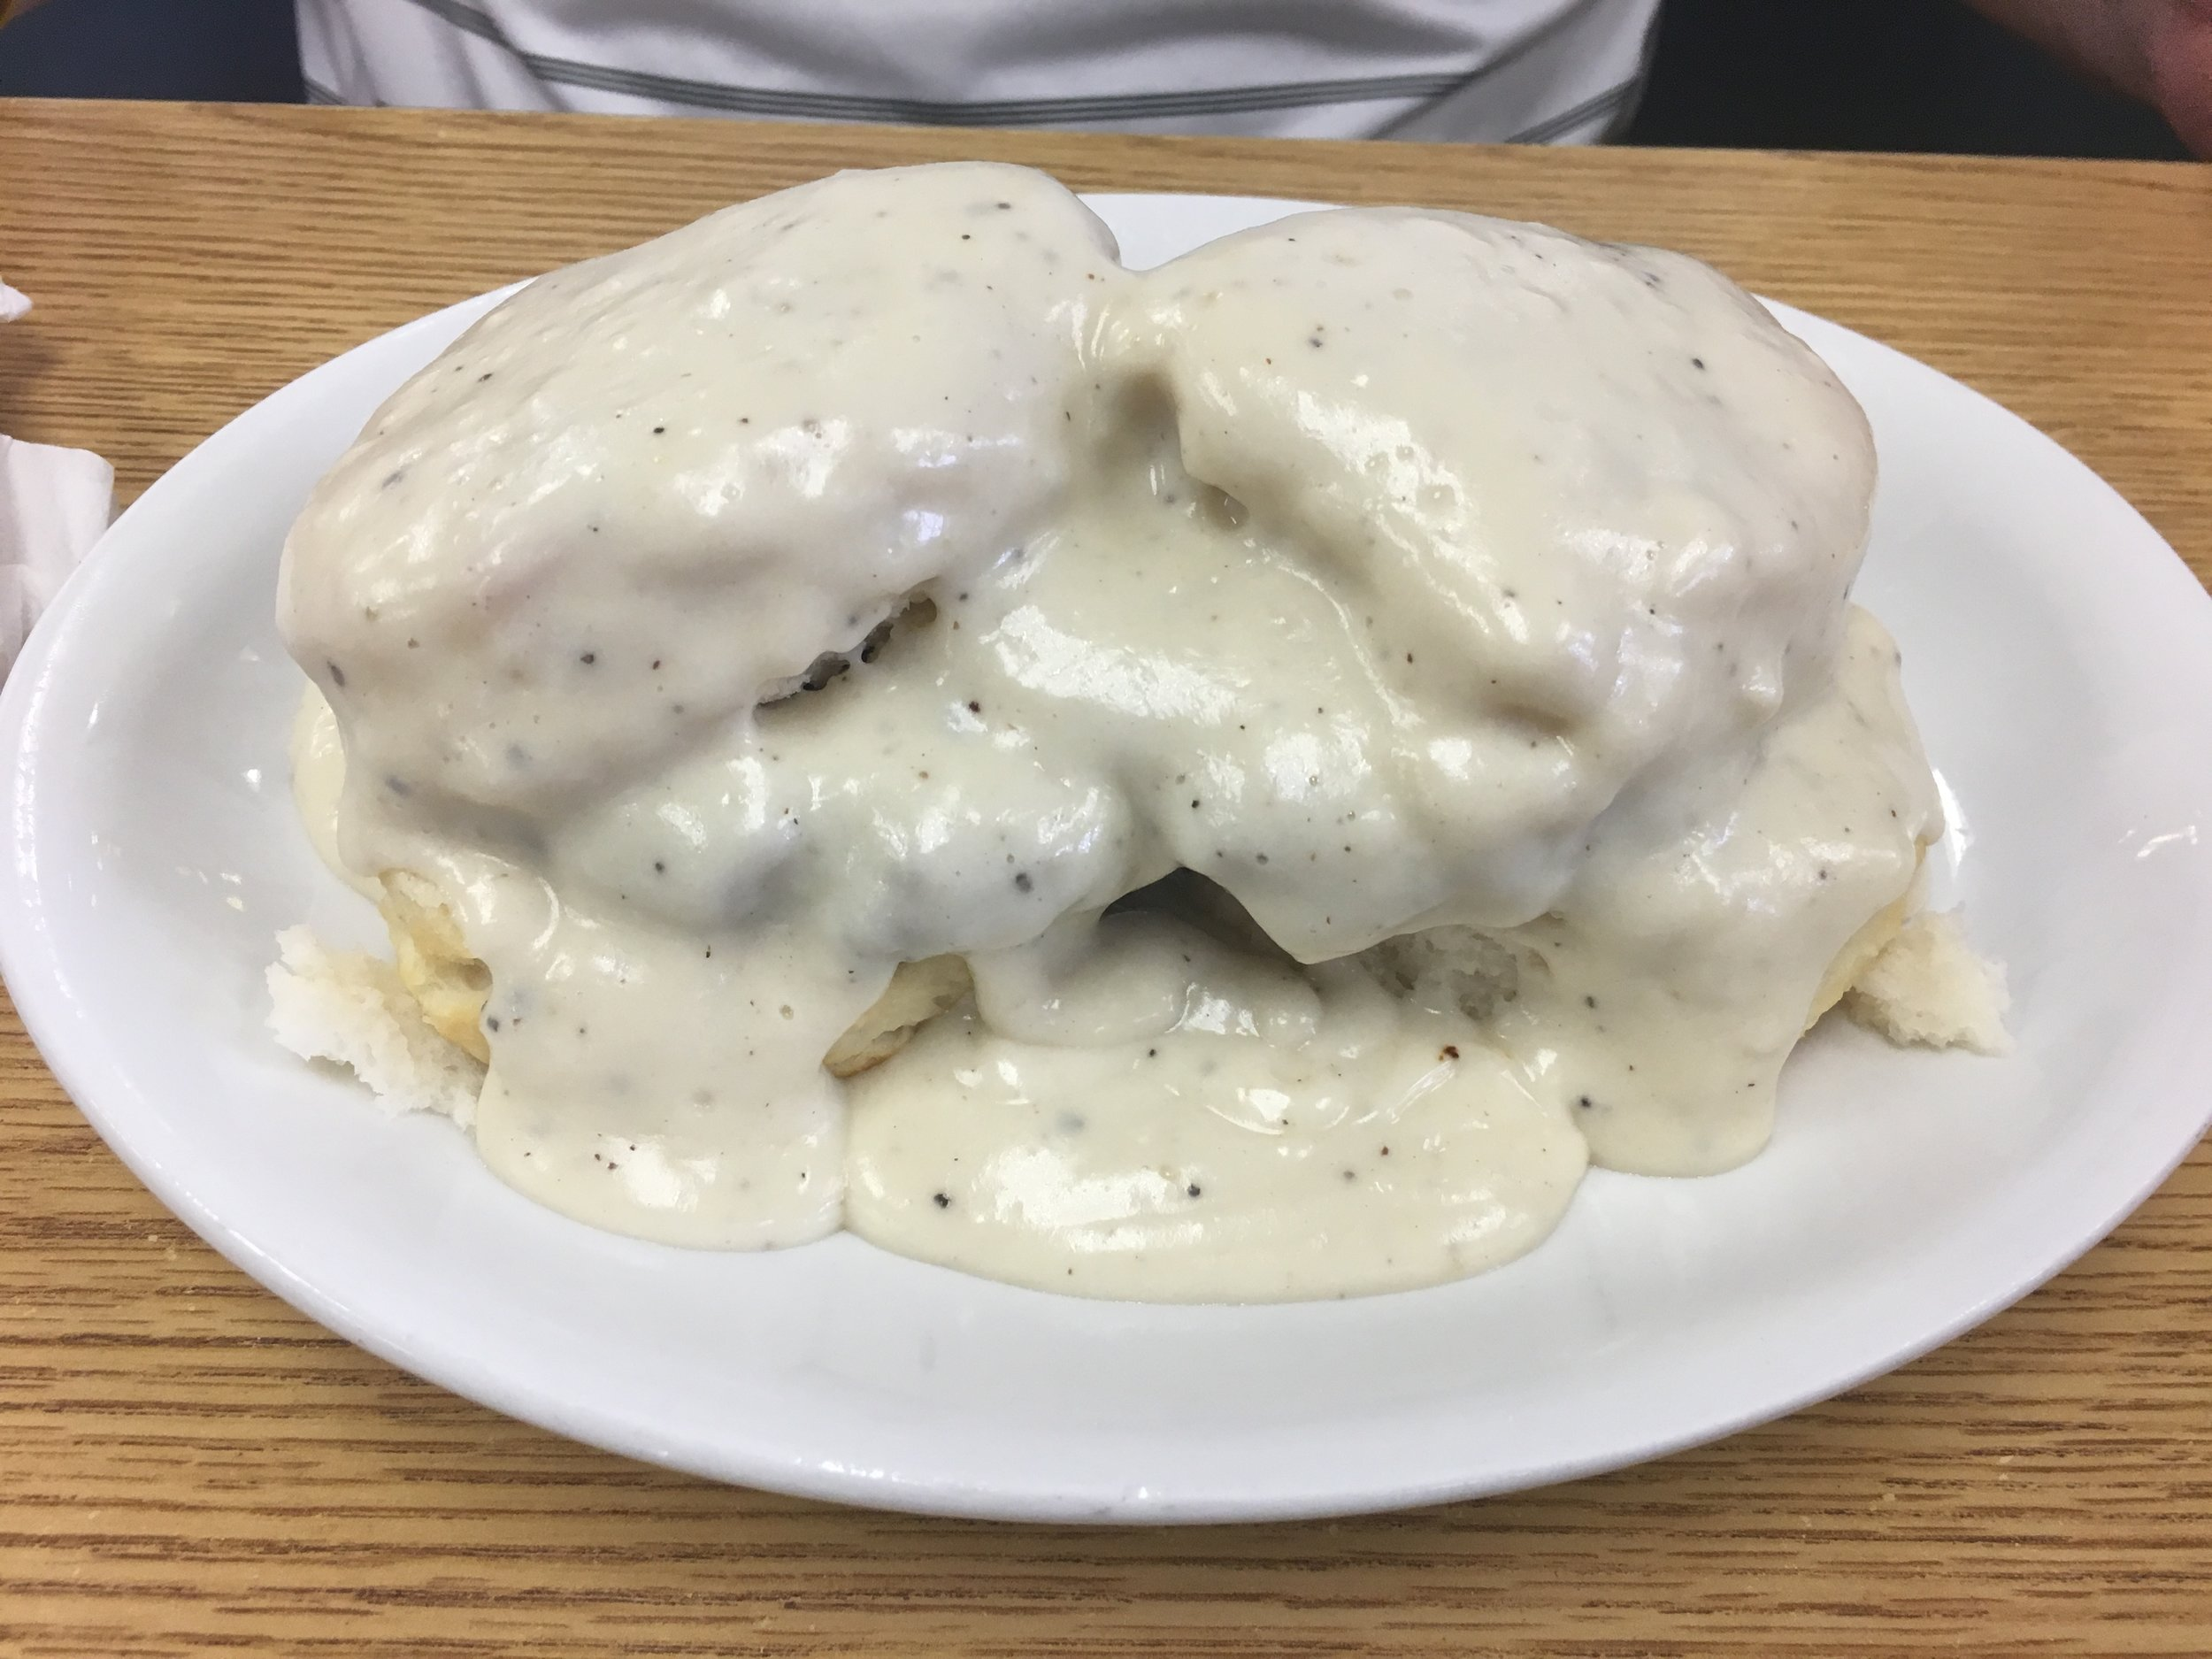 Rich, creamy gravy atop light biscuits. There's even a homemade sausage patty buried under there!